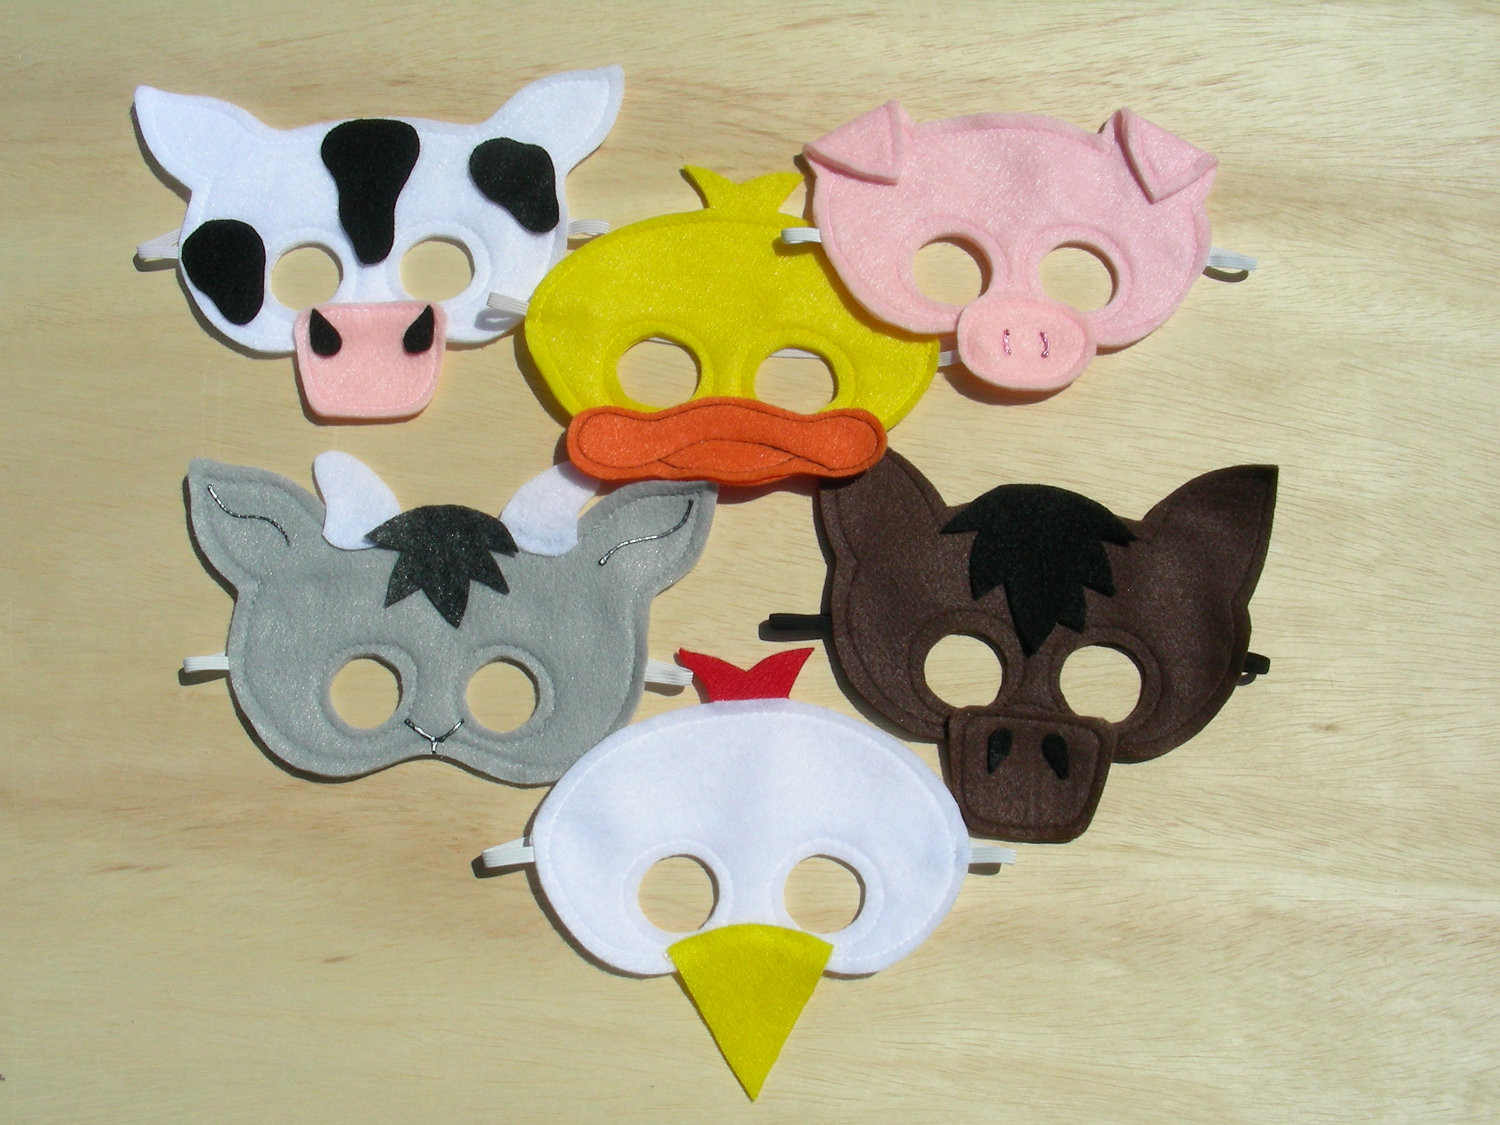 Best ideas about DIY Animal Masks . Save or Pin Child Size Farm Animal Masks DIY Fun for Big Brother Now.